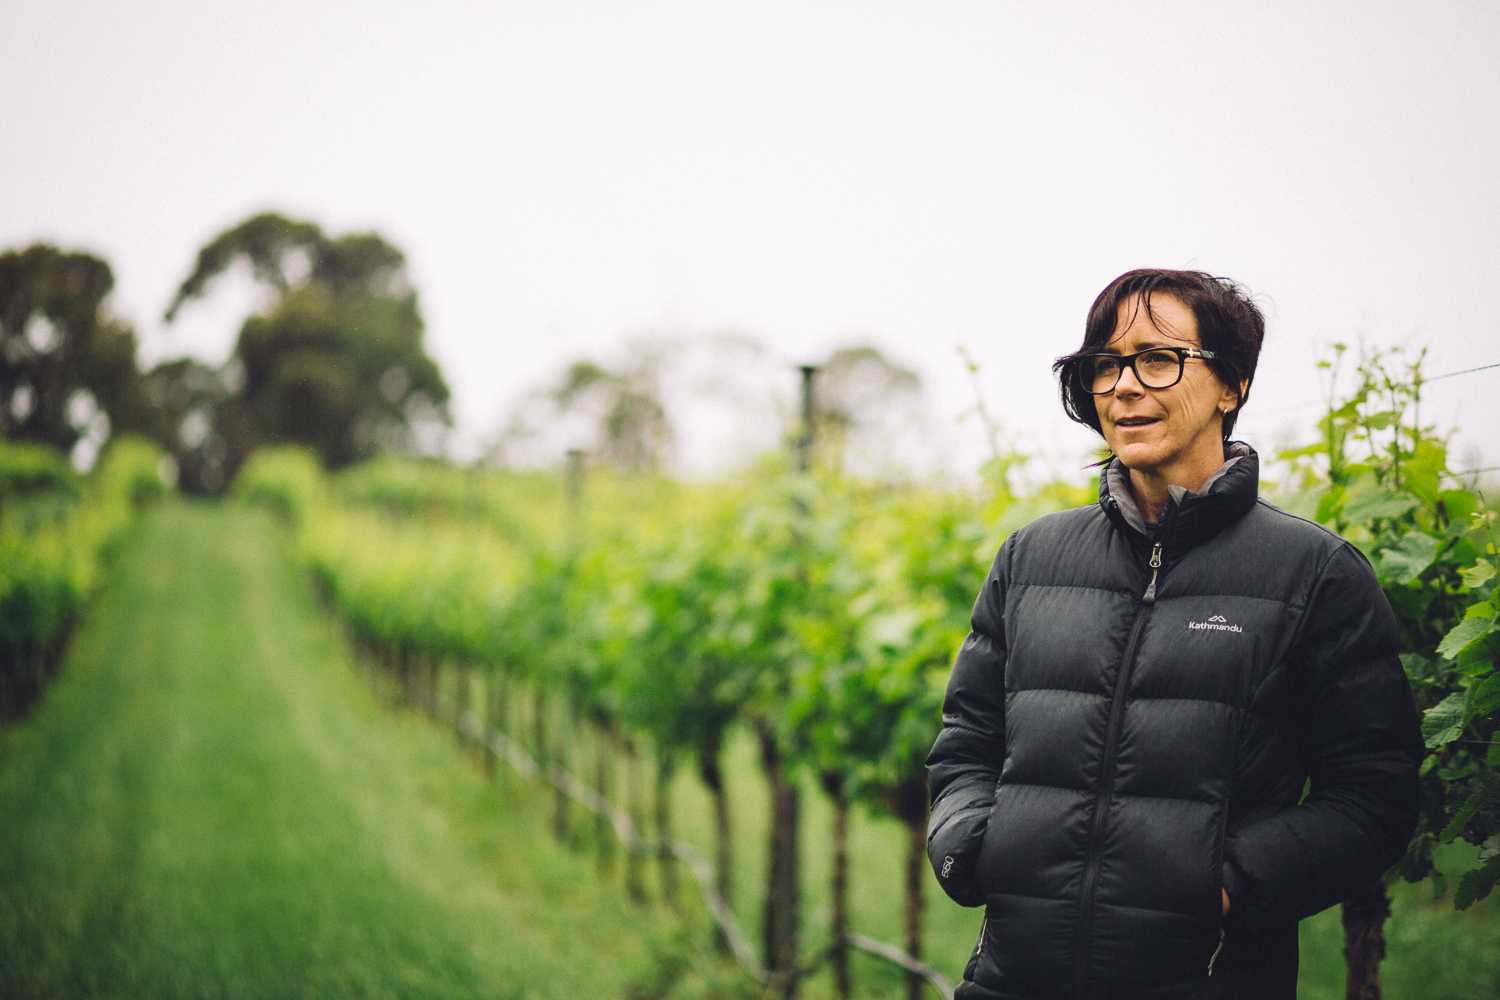 Lisa Sartori on her vineyard, Dirty Three Wines, Leongatha South, 2016, Source: Museums Victoria, Photographer: Catherine Forge